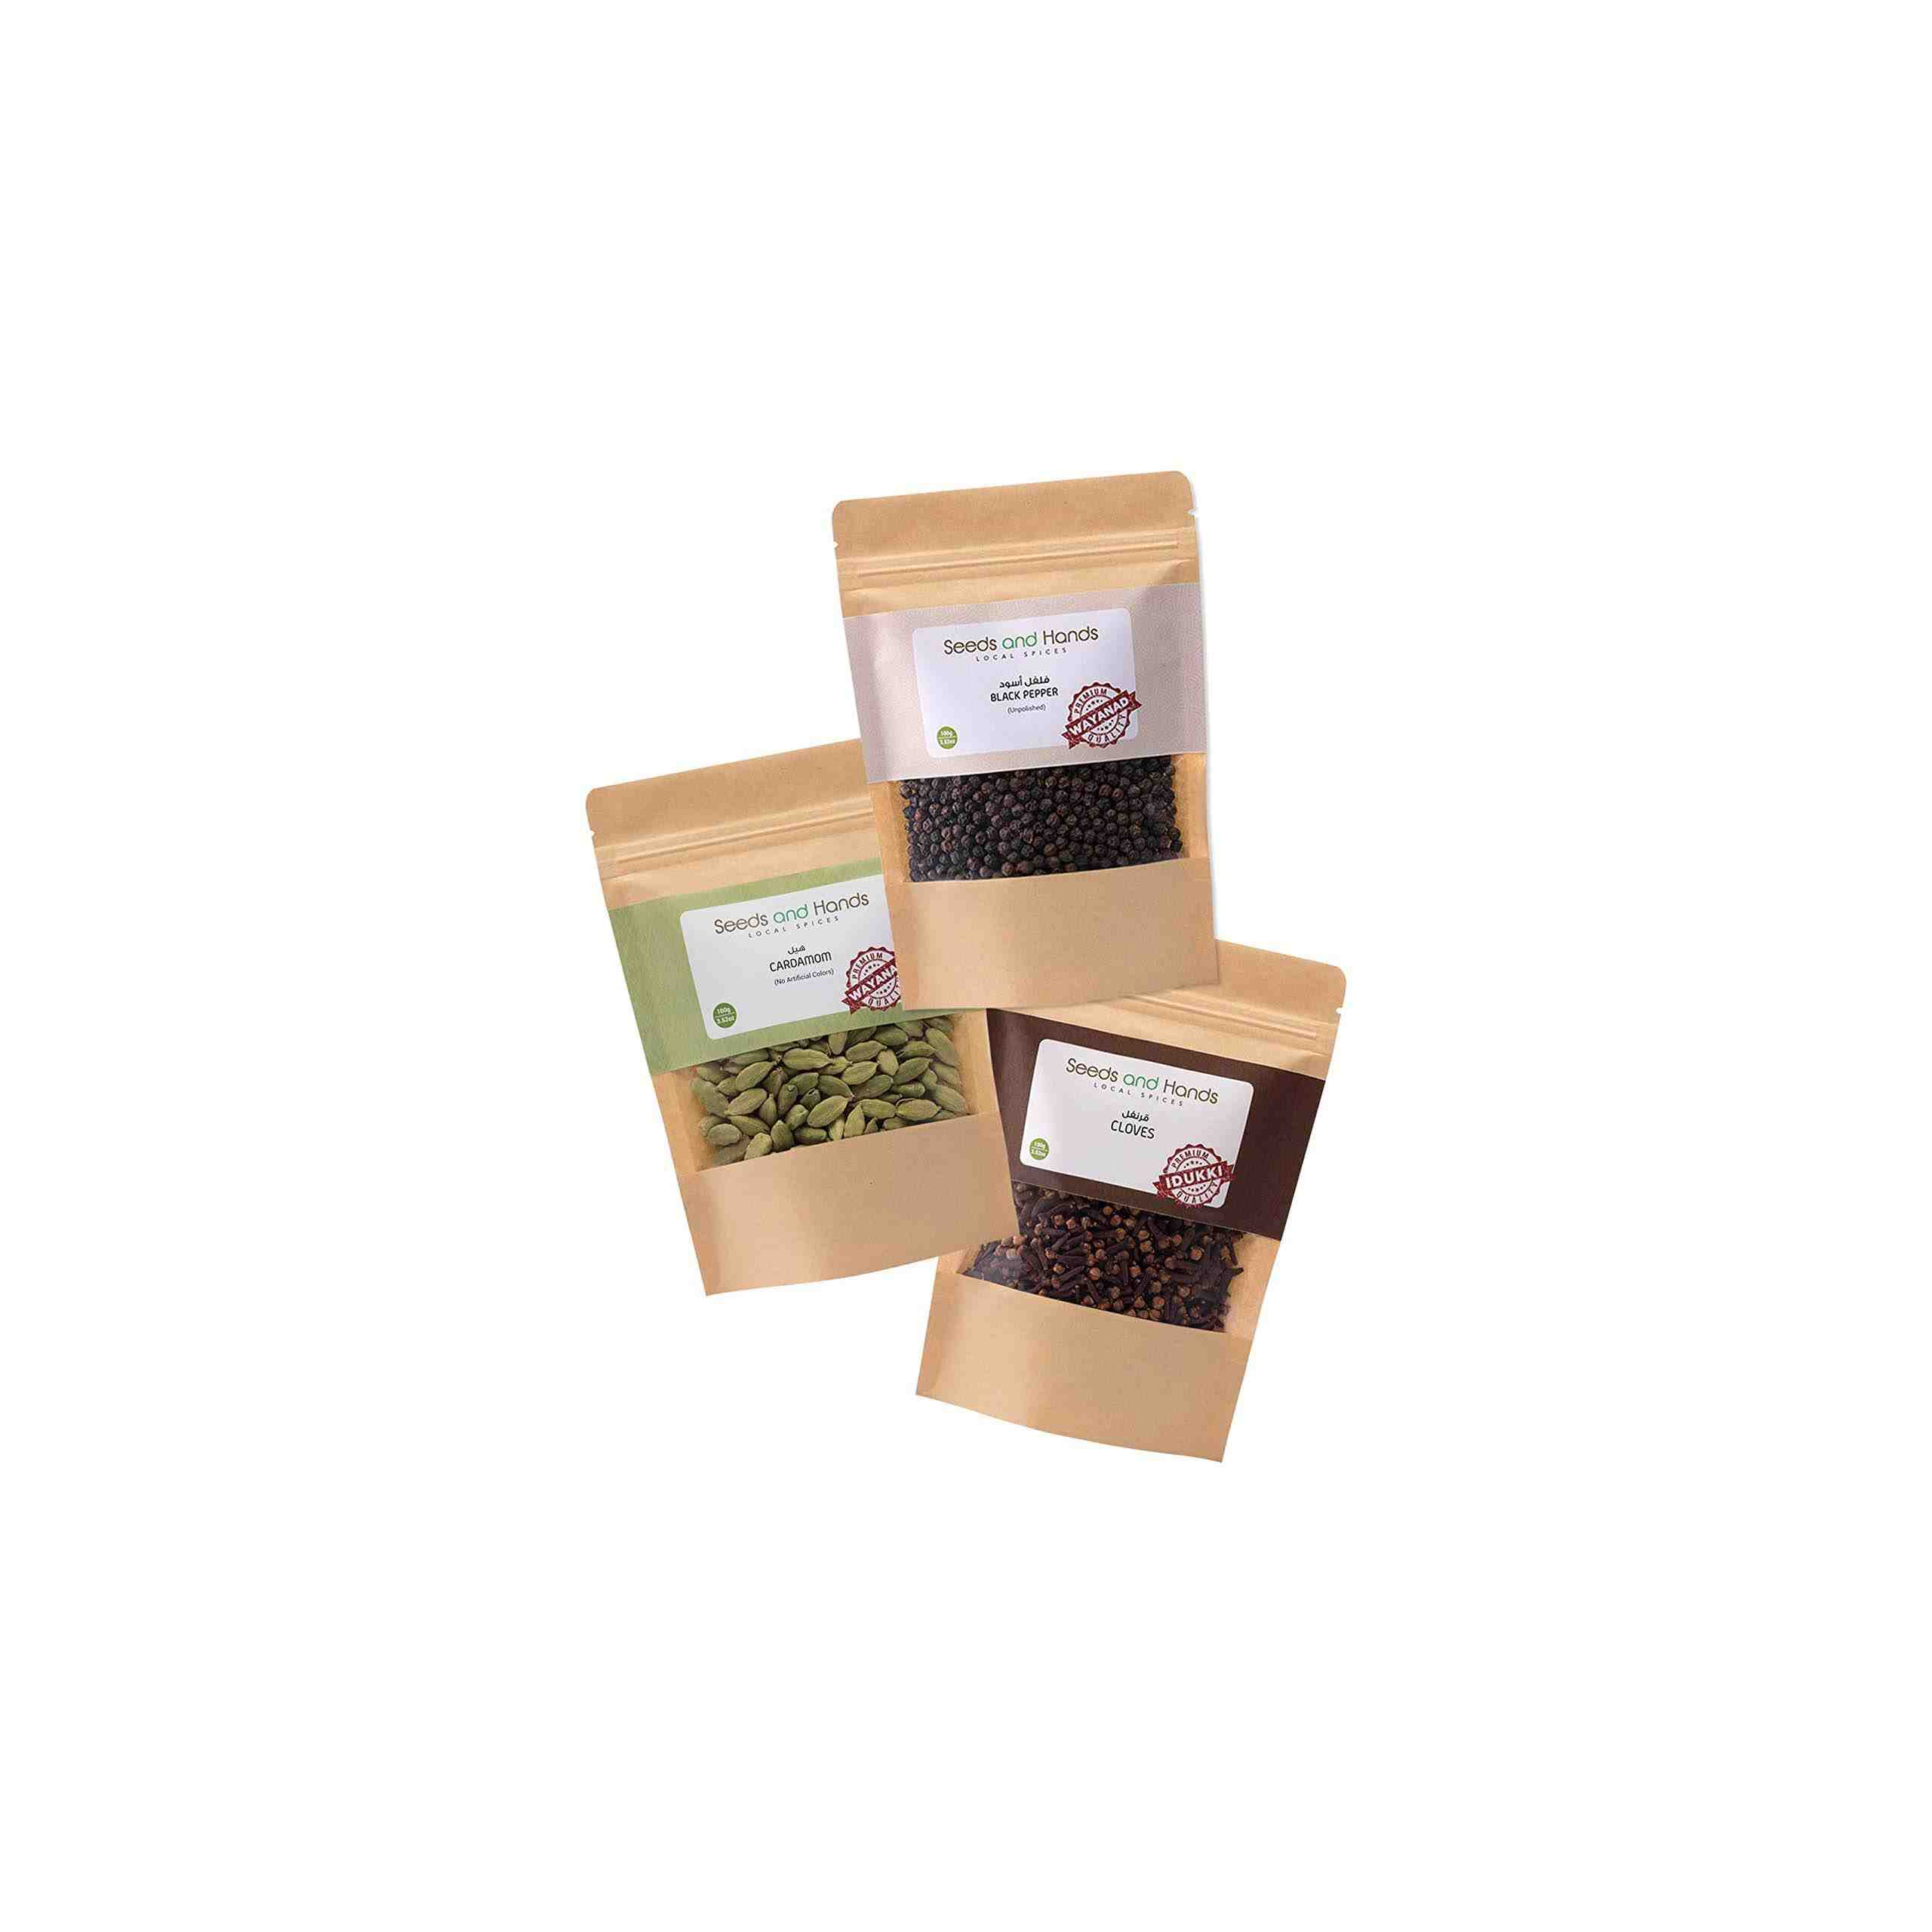 Seeds and Hands Whole Spice Combo (Black Pepper 100g, Cardamom 100g, Cloves 100g)